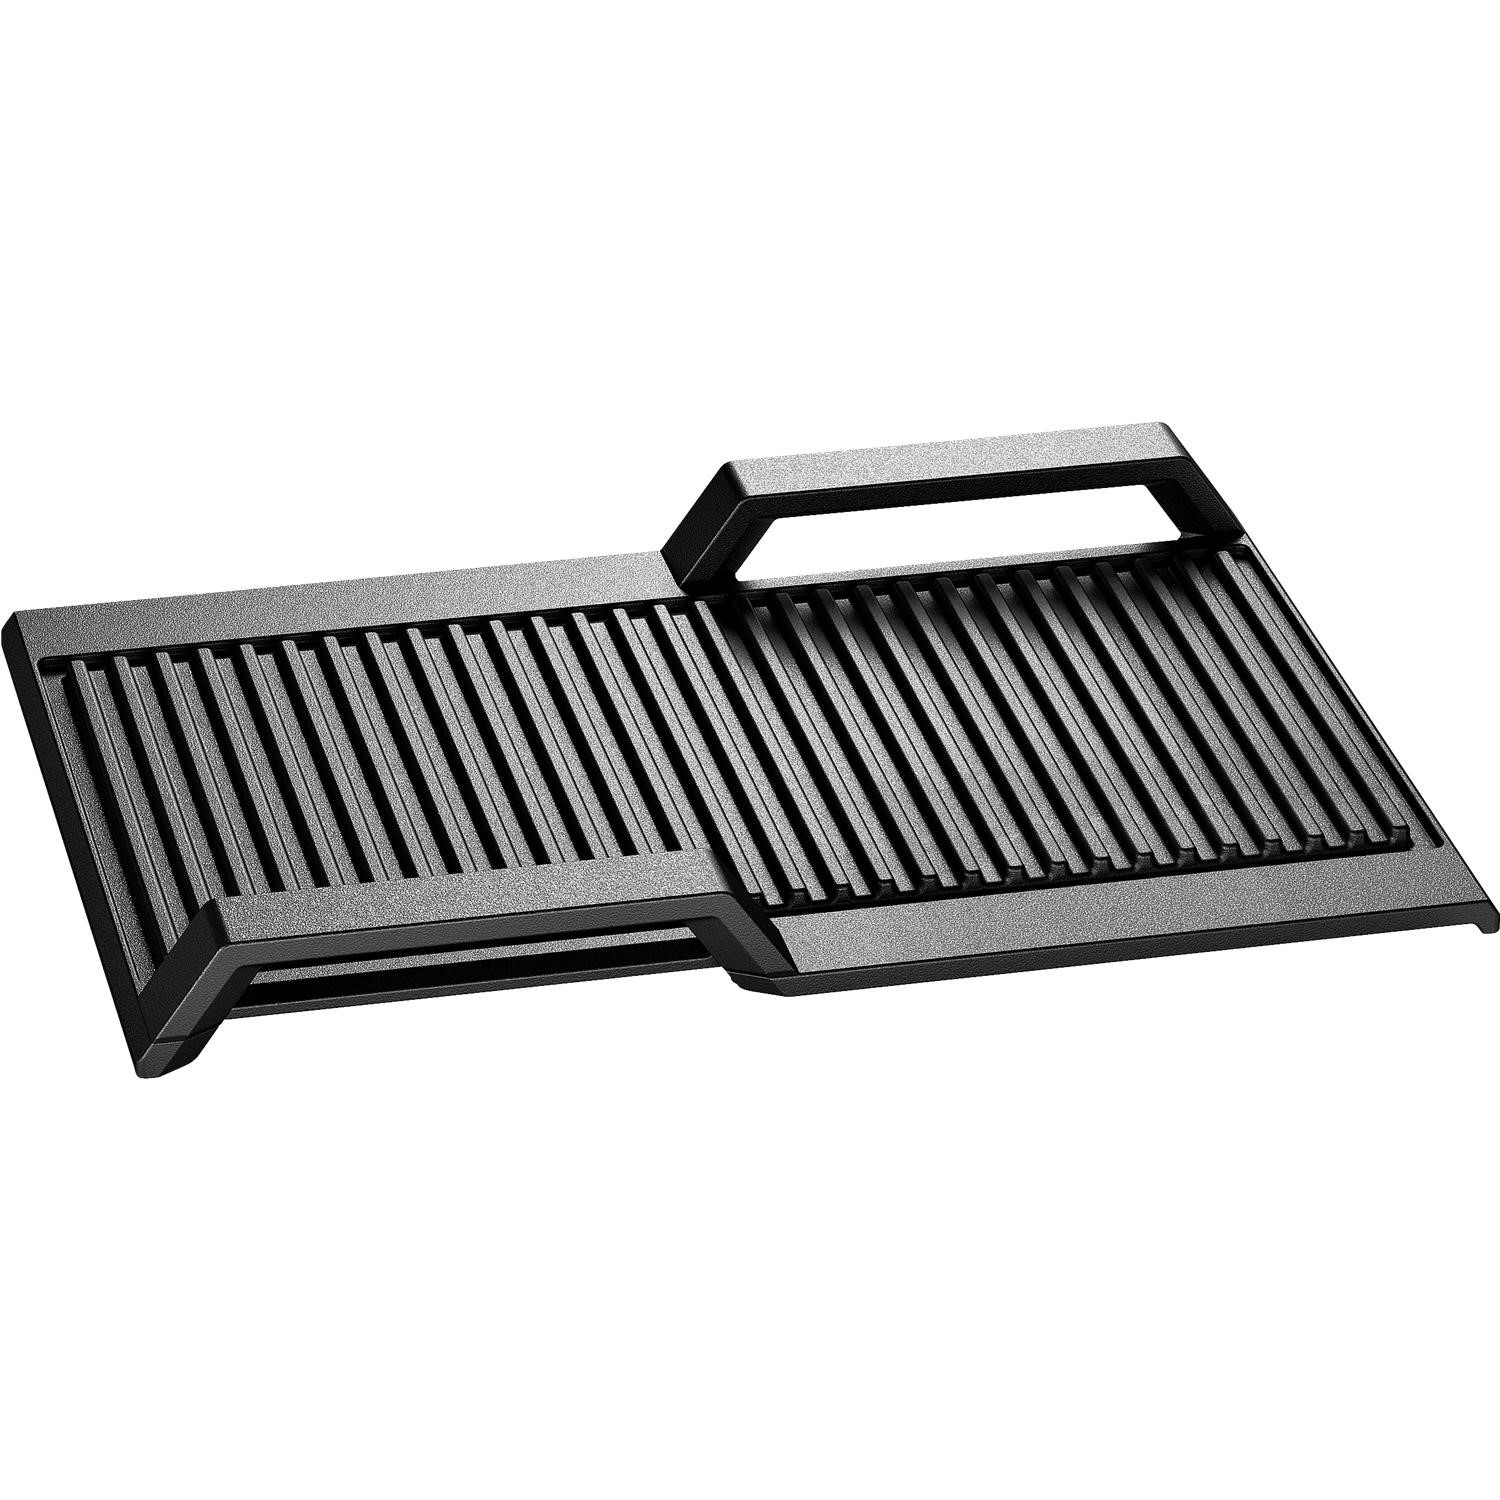 AuBergewohnlich Neff Z9416X2 Griddle Plate Suitable For Induction Hobs Z9416X2